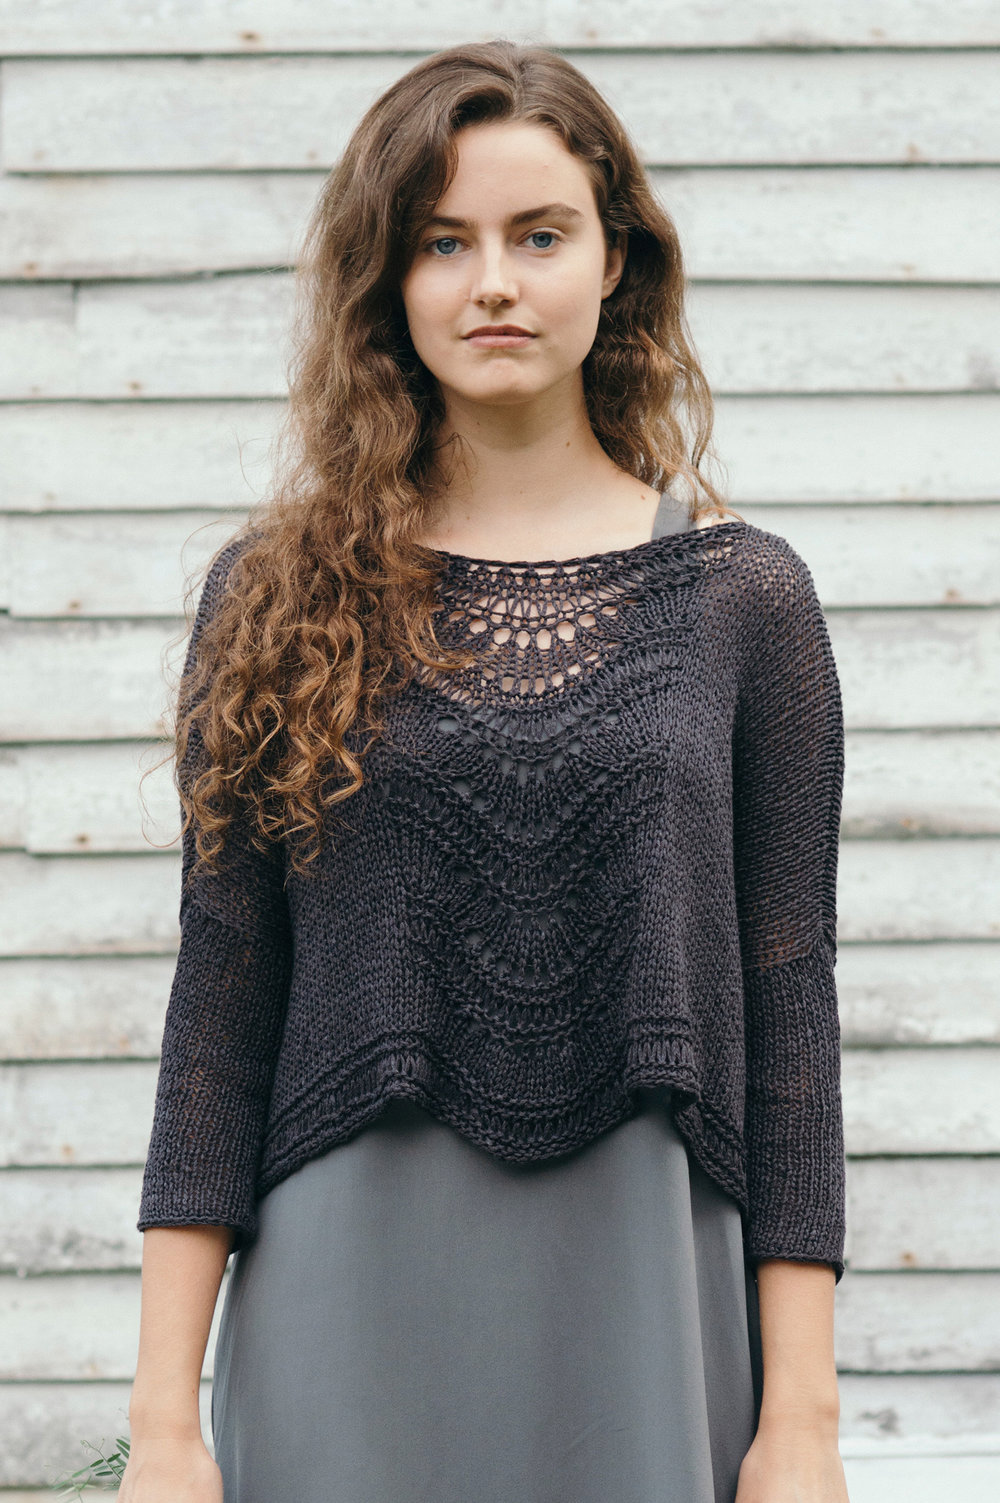 quince-co-deschain-leila-raabe-knitting-pattern-kestrel-1.jpg